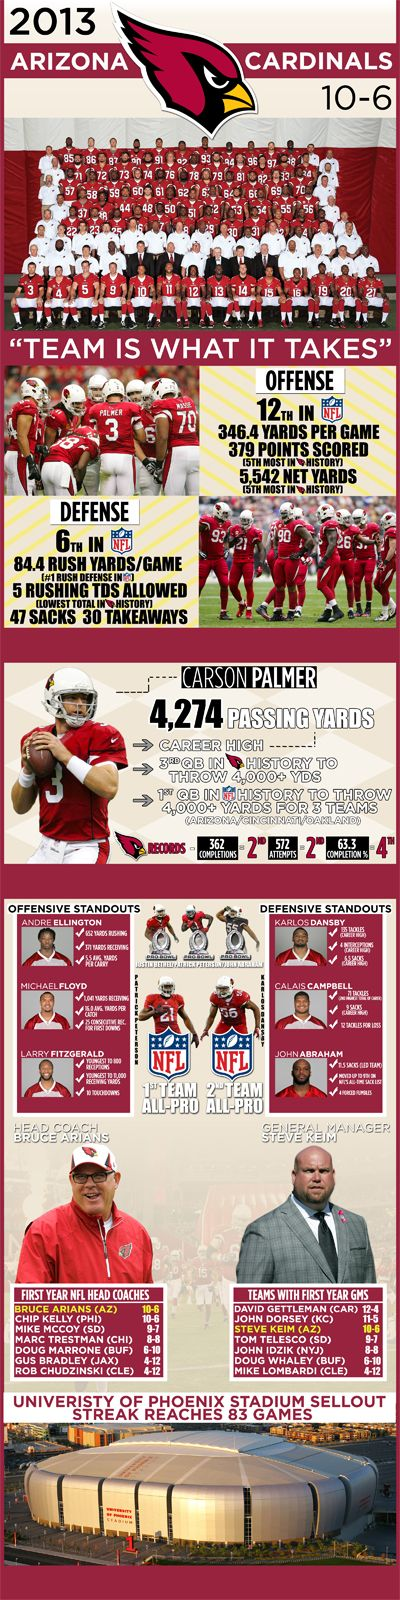 Arizona Cardinals 2013 Season Infographic